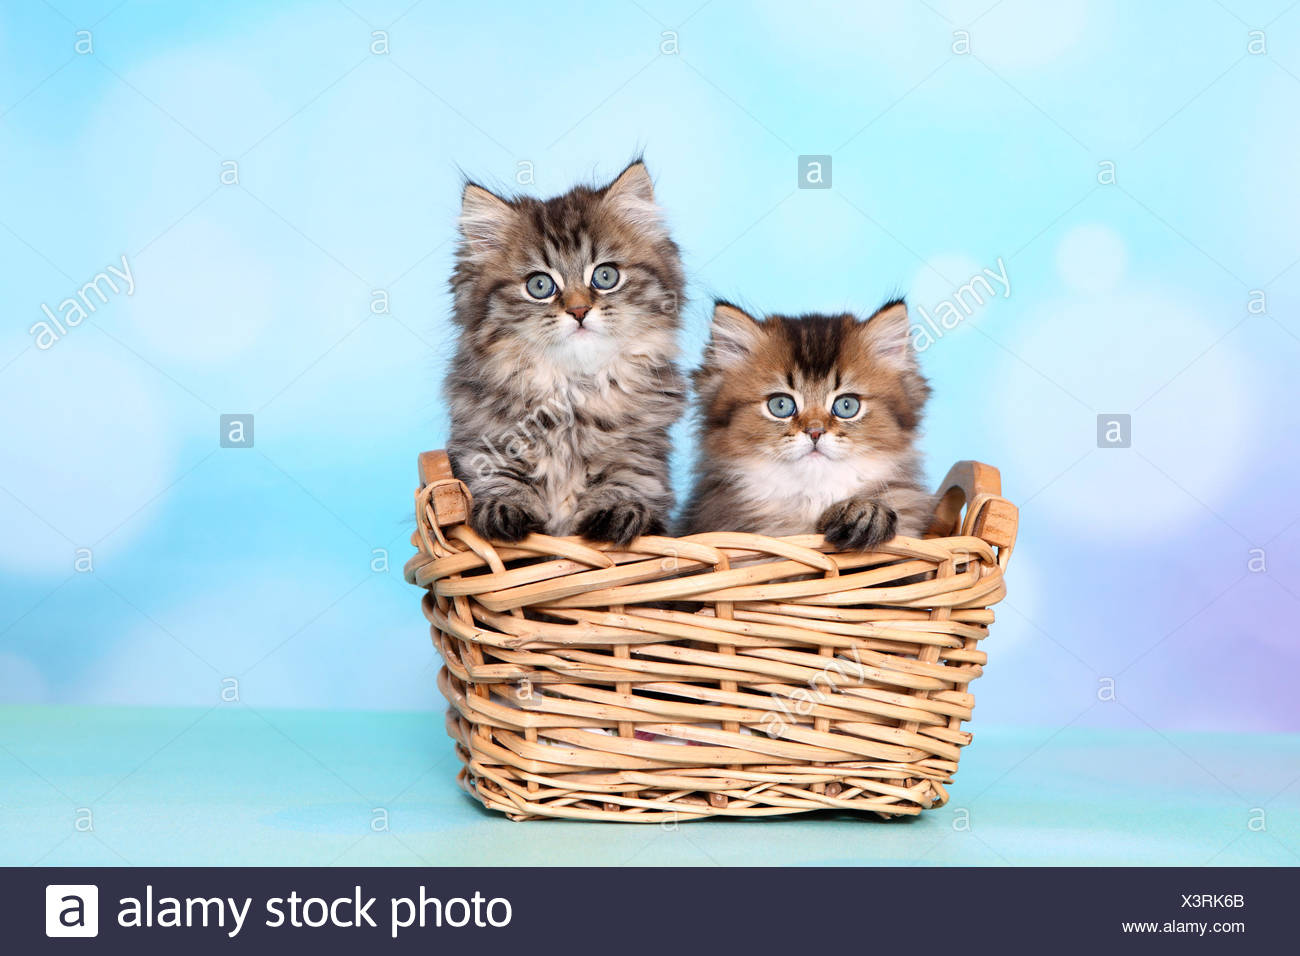 British Longhair. Two kittens (8 weeks old) in a wicker basket. Studio picture against a blue background Stock Photo